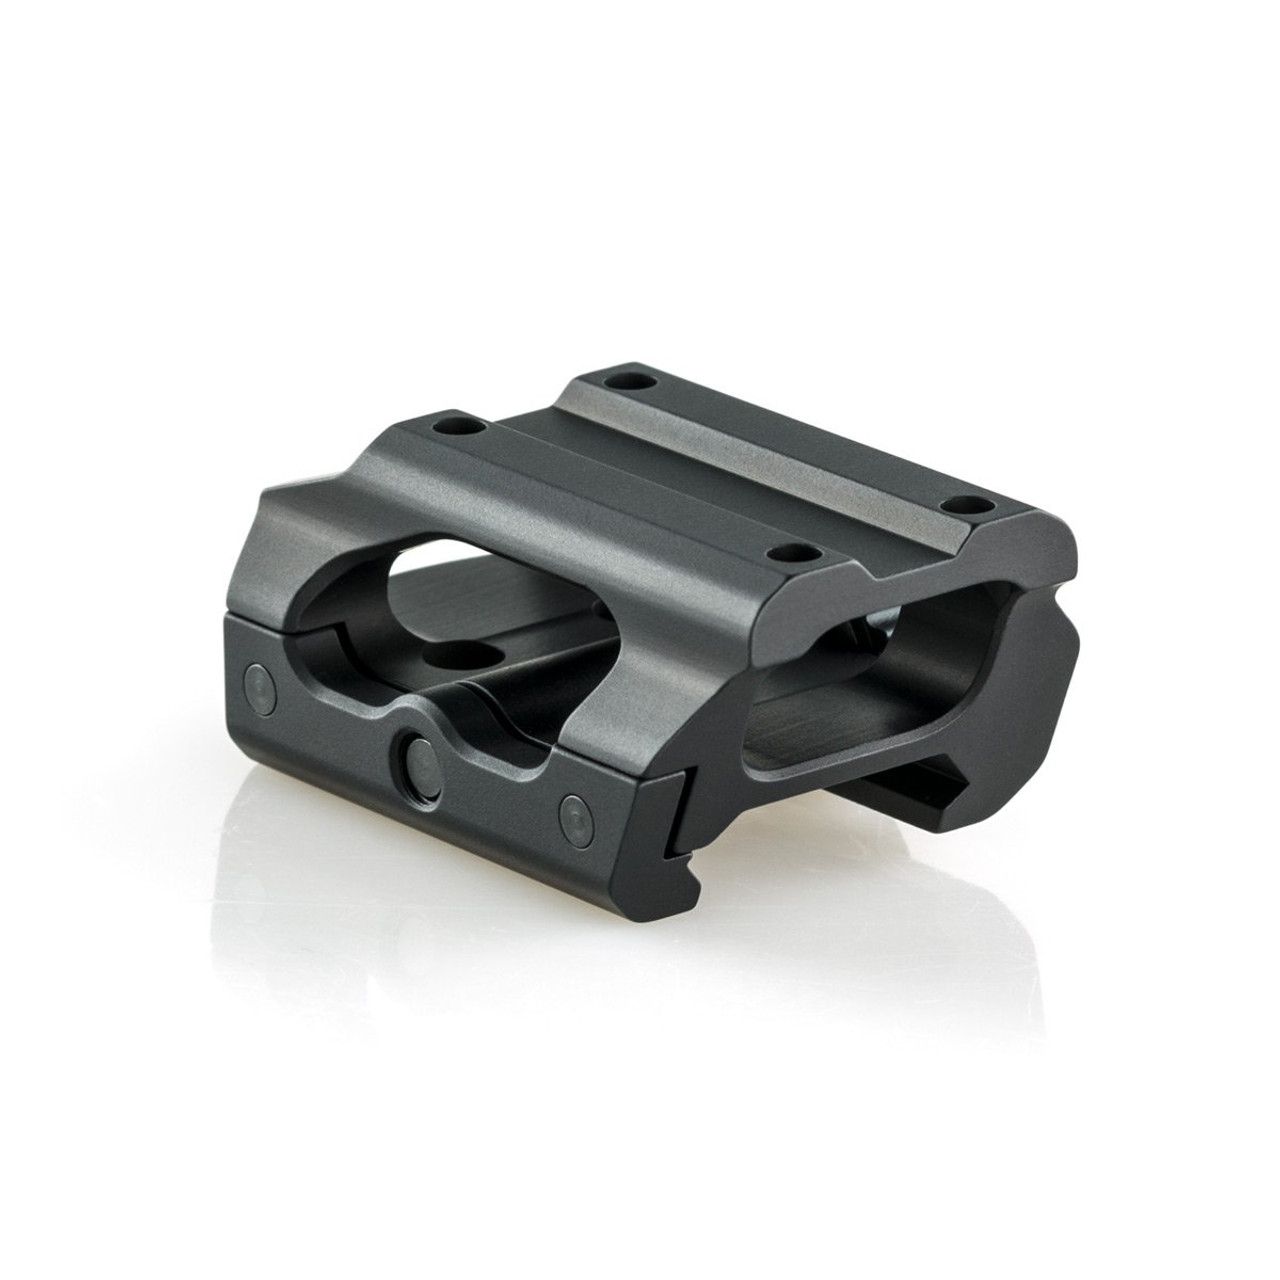 SCALARWORKS LDM MRO Mount - Absolute